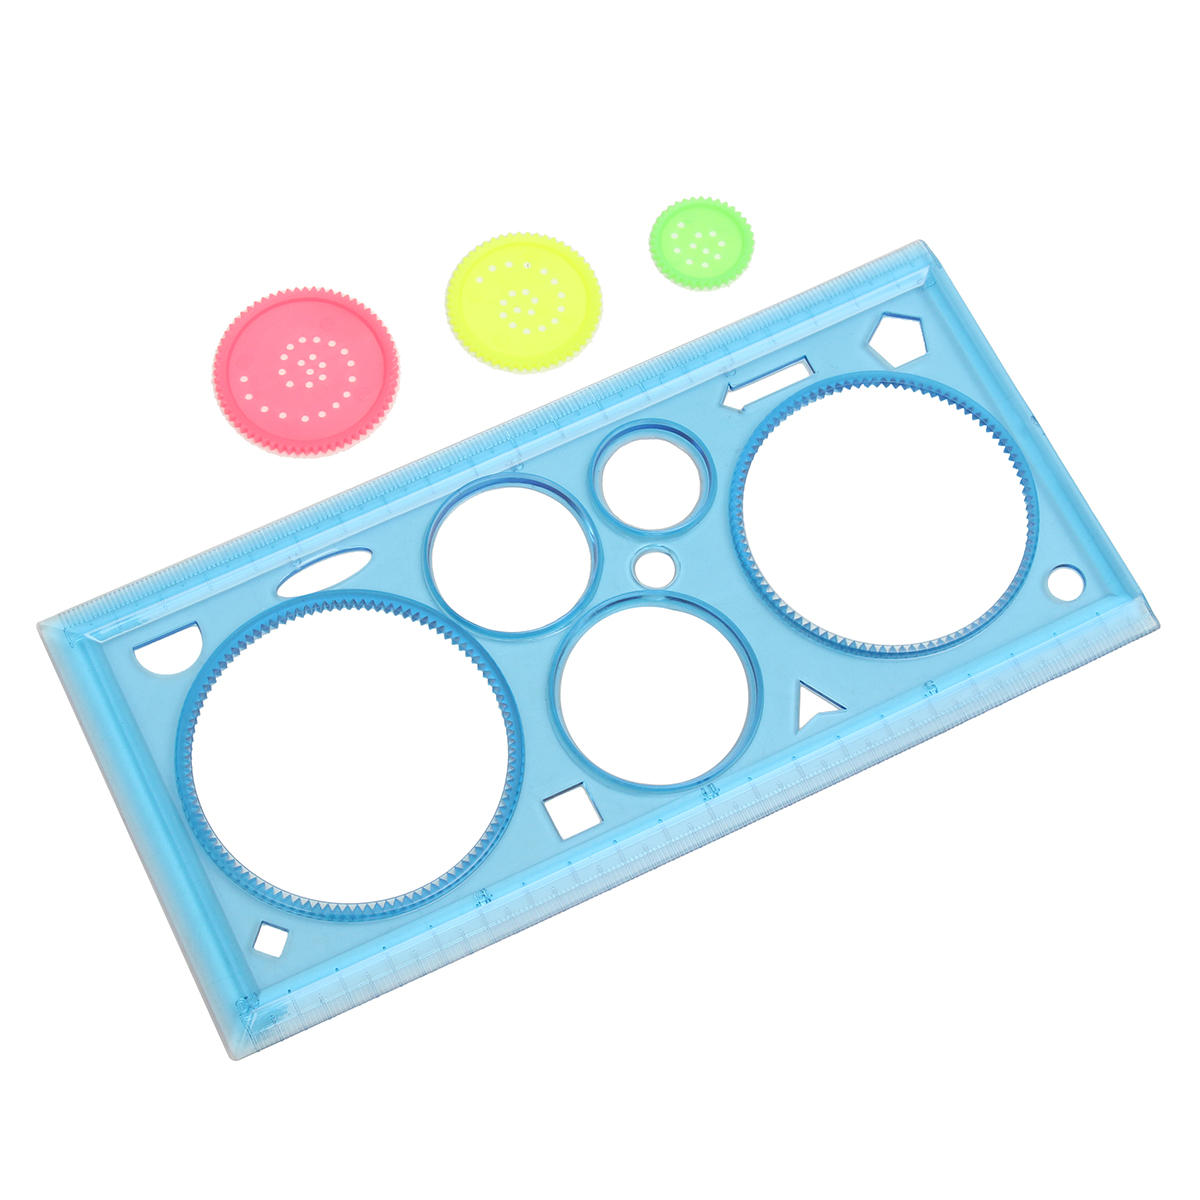 1 Pc Multi-functional Puzzle Ruler Set Spirograph Geometric Painting Template Ruler Drafting Tools For Students Drawing Toys Children Learning Art Tools